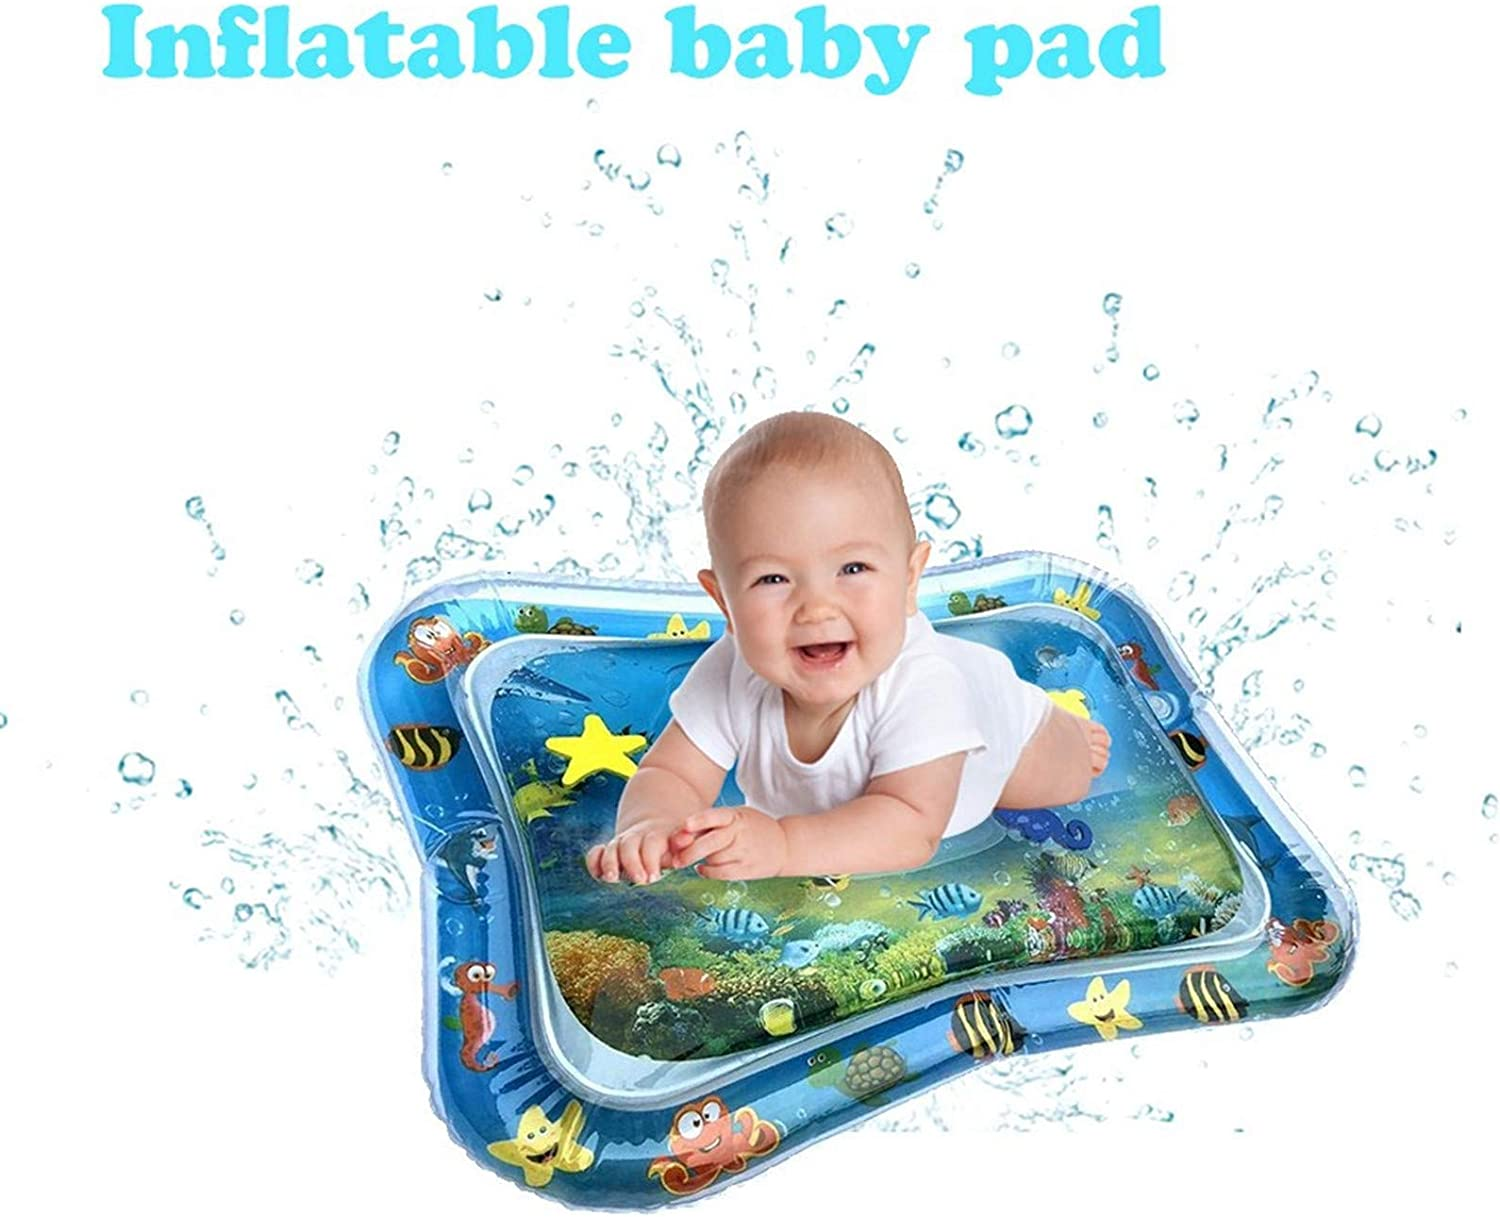 Baby Tummy-Time Water Mat Infant Water Play Mat Sensory Water Playmat Pad for 3 6 9 Months Newborn Toddler Boys Girls Kids Perfect Indoor Activity Centers Fun Game Gift